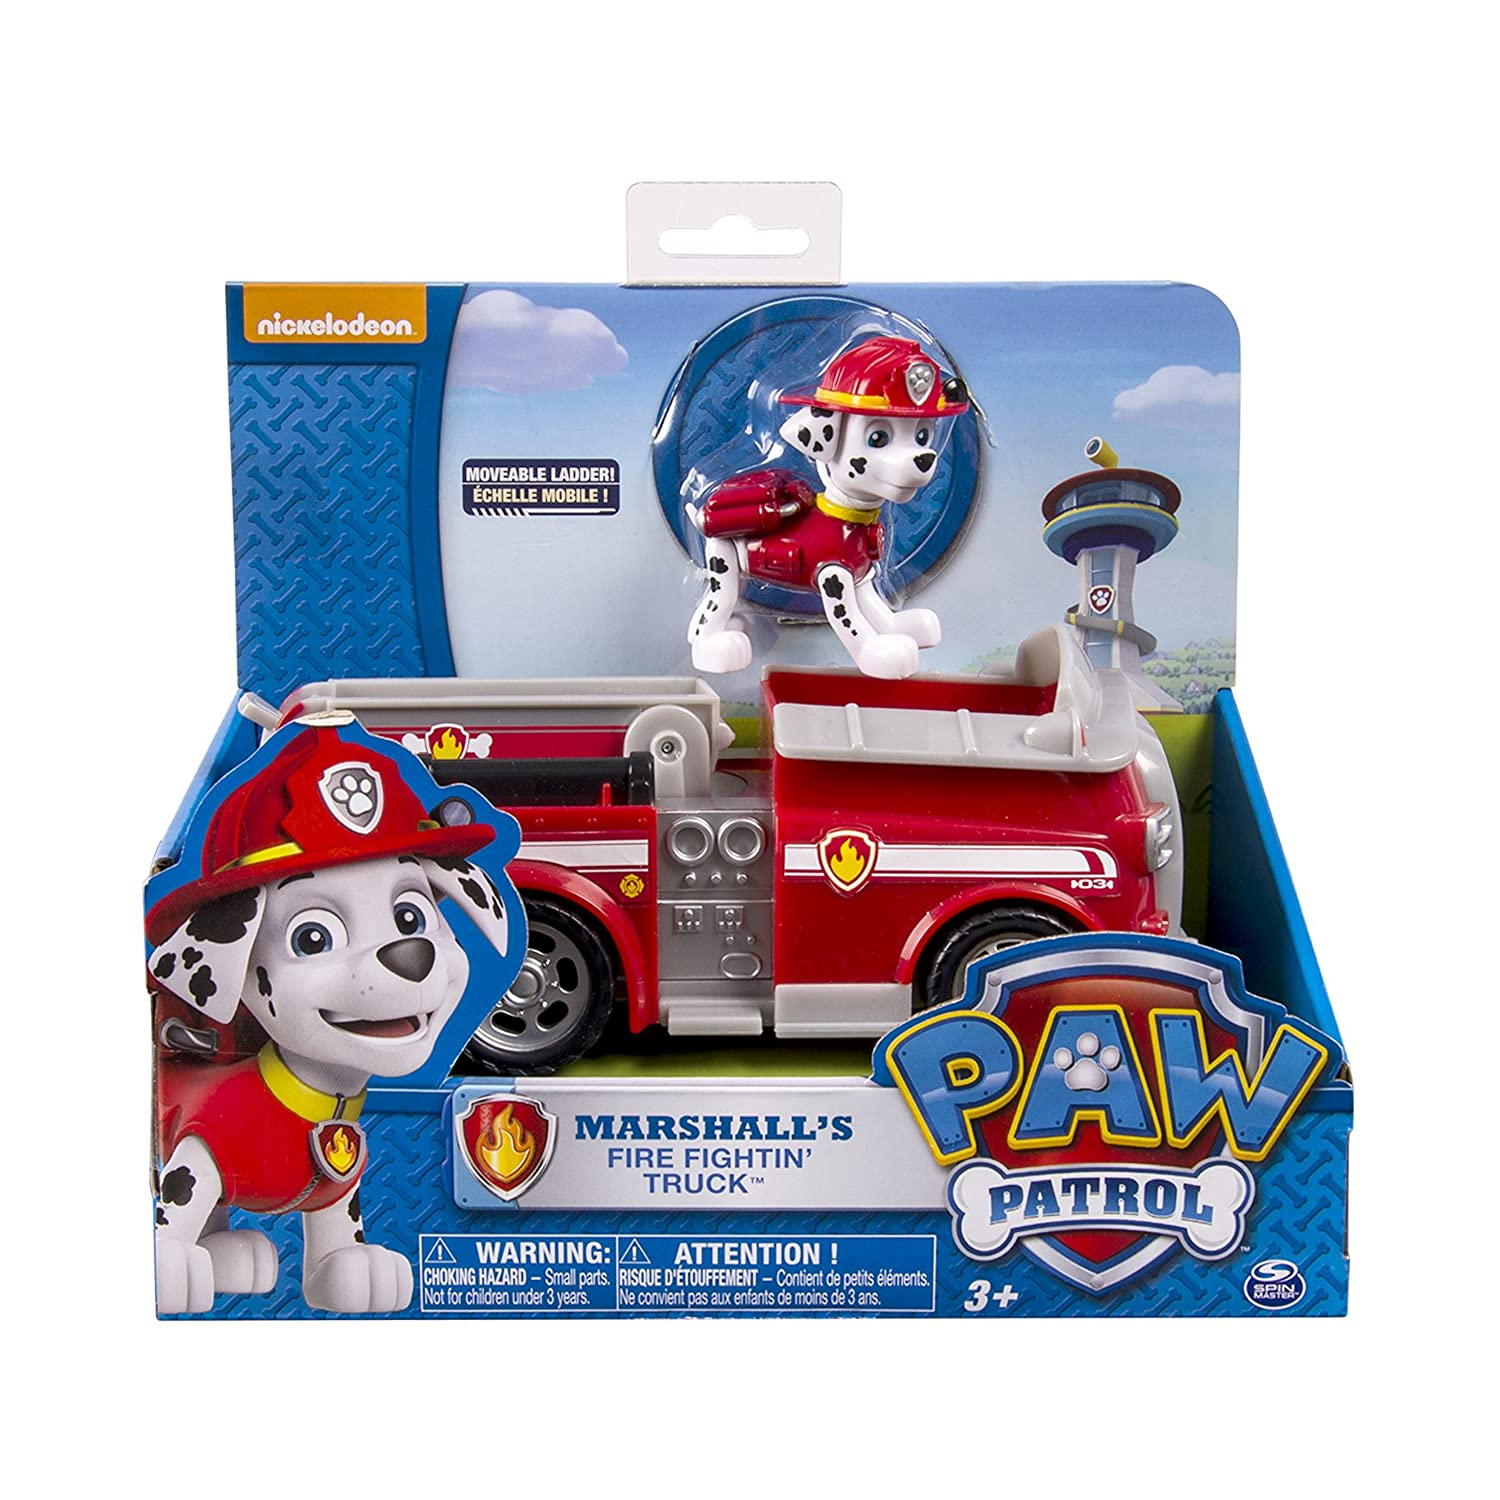 Nickelodeon Paw Patrol Marshall's Fire Fightin'